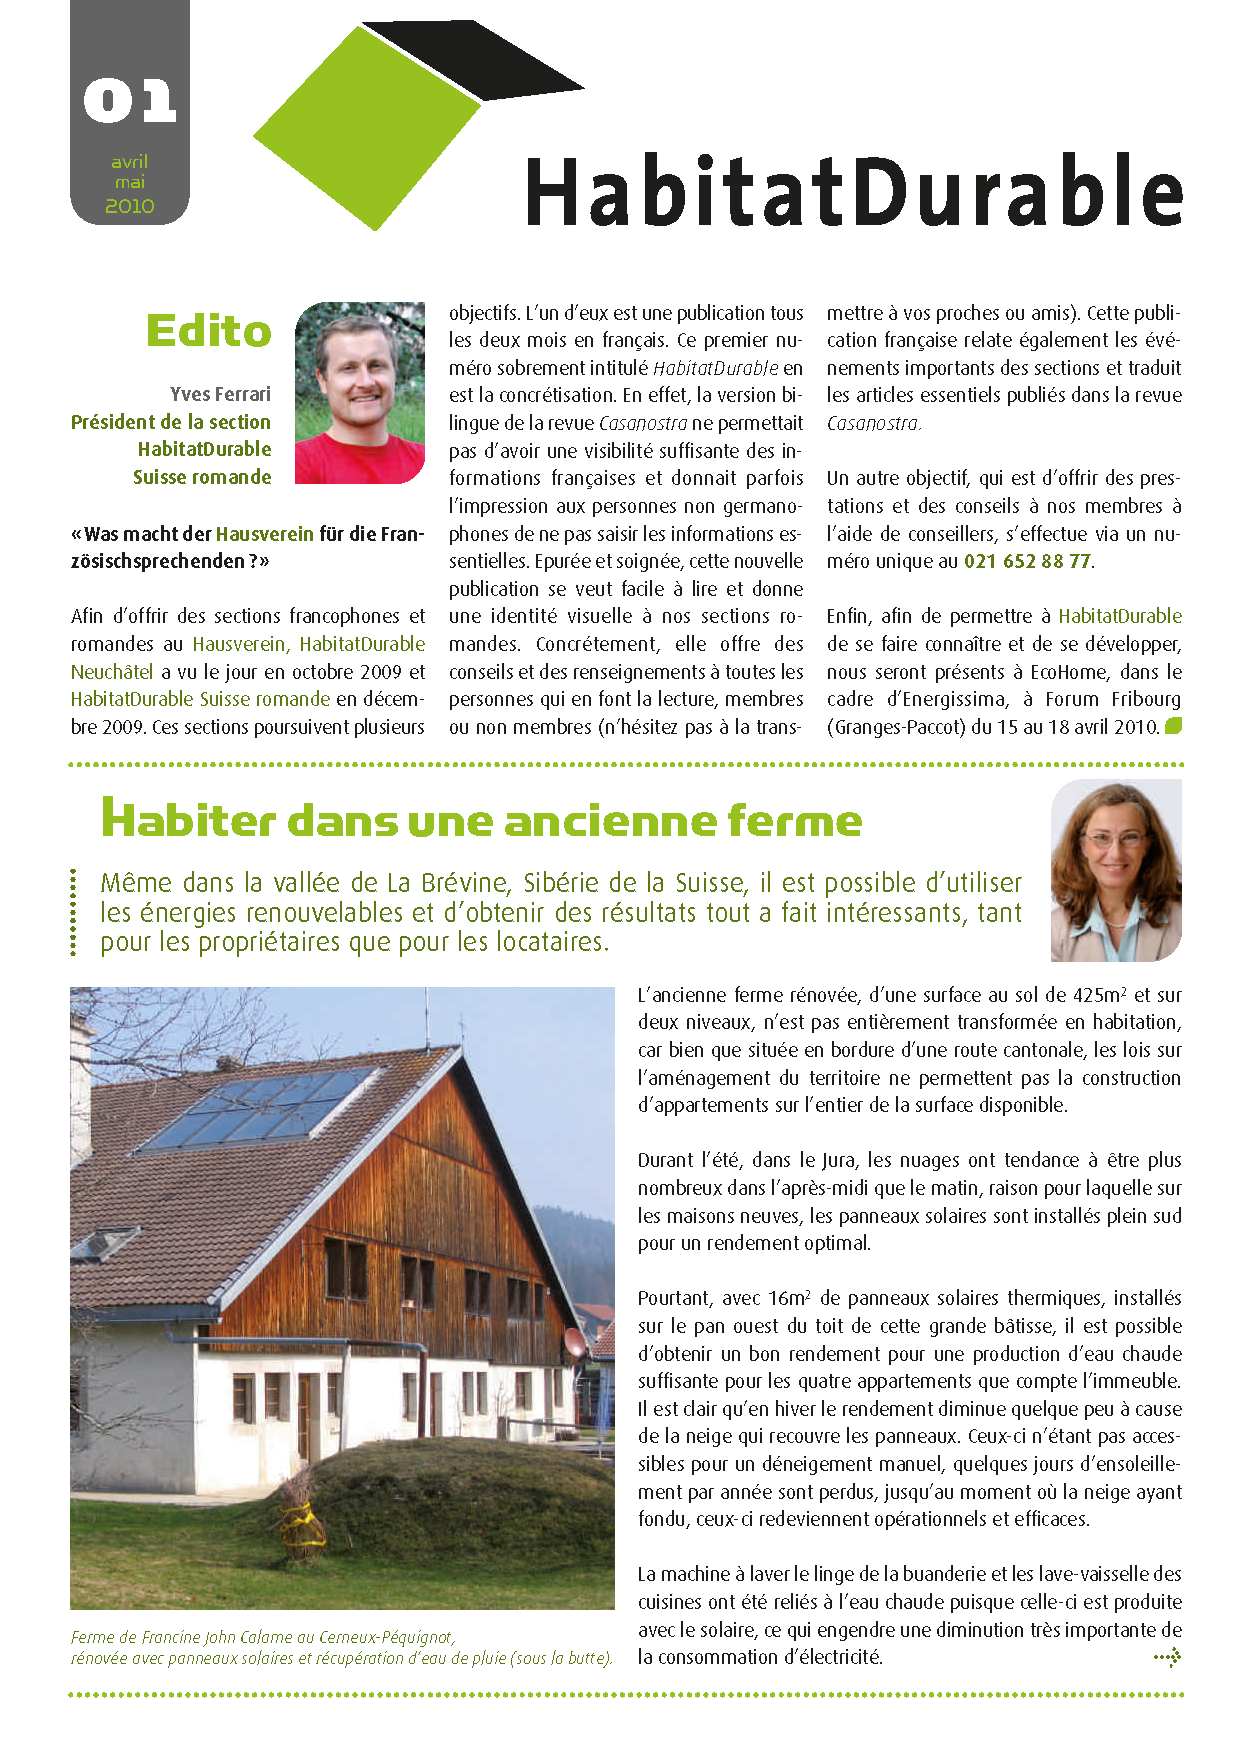 HabitatDurable 1 | avril/mai 2010